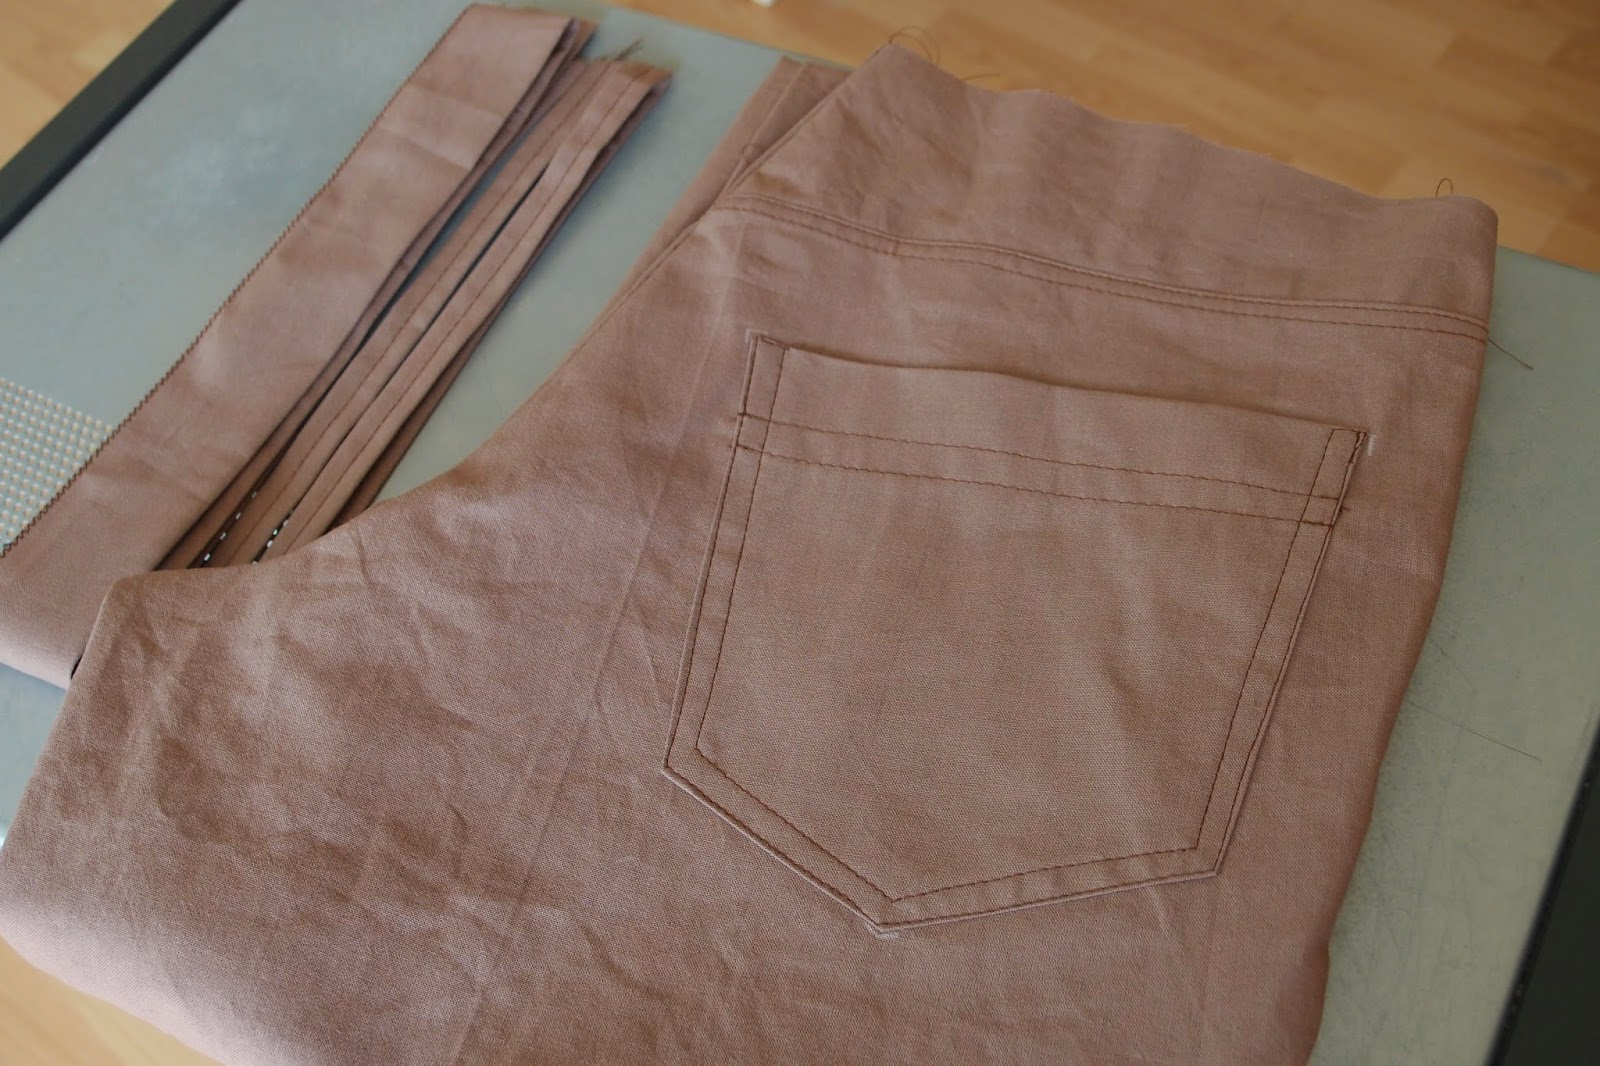 a waitband, belt loops and hem away from being ready to wear